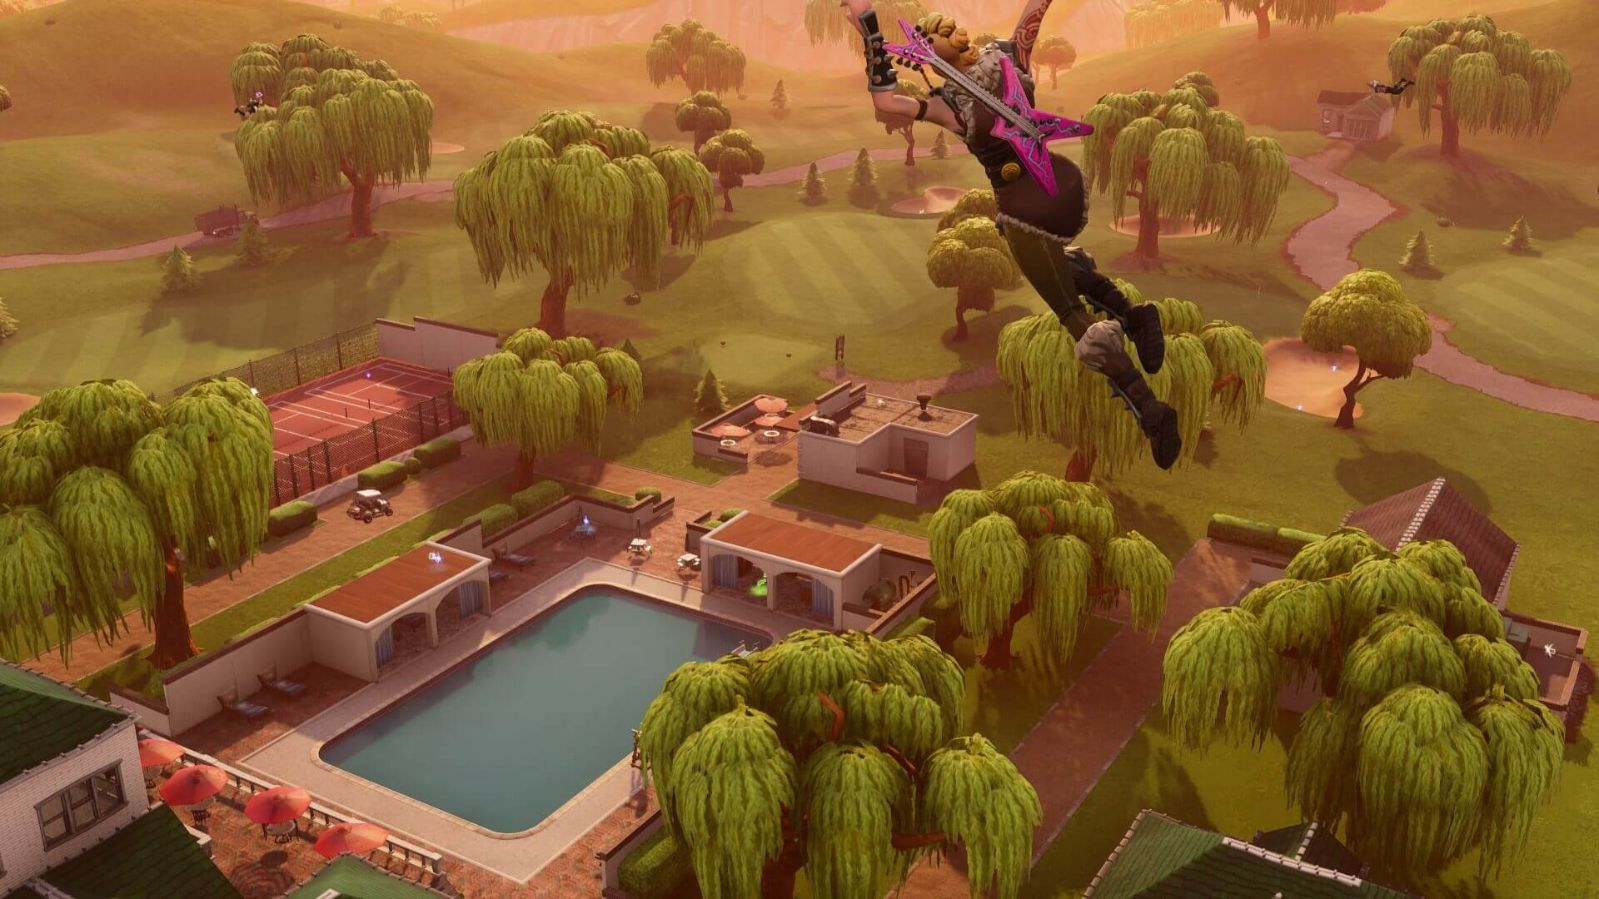 Fortnite: stagione 5 - 224C9280 4167 429D 92D6 71119A60FF35